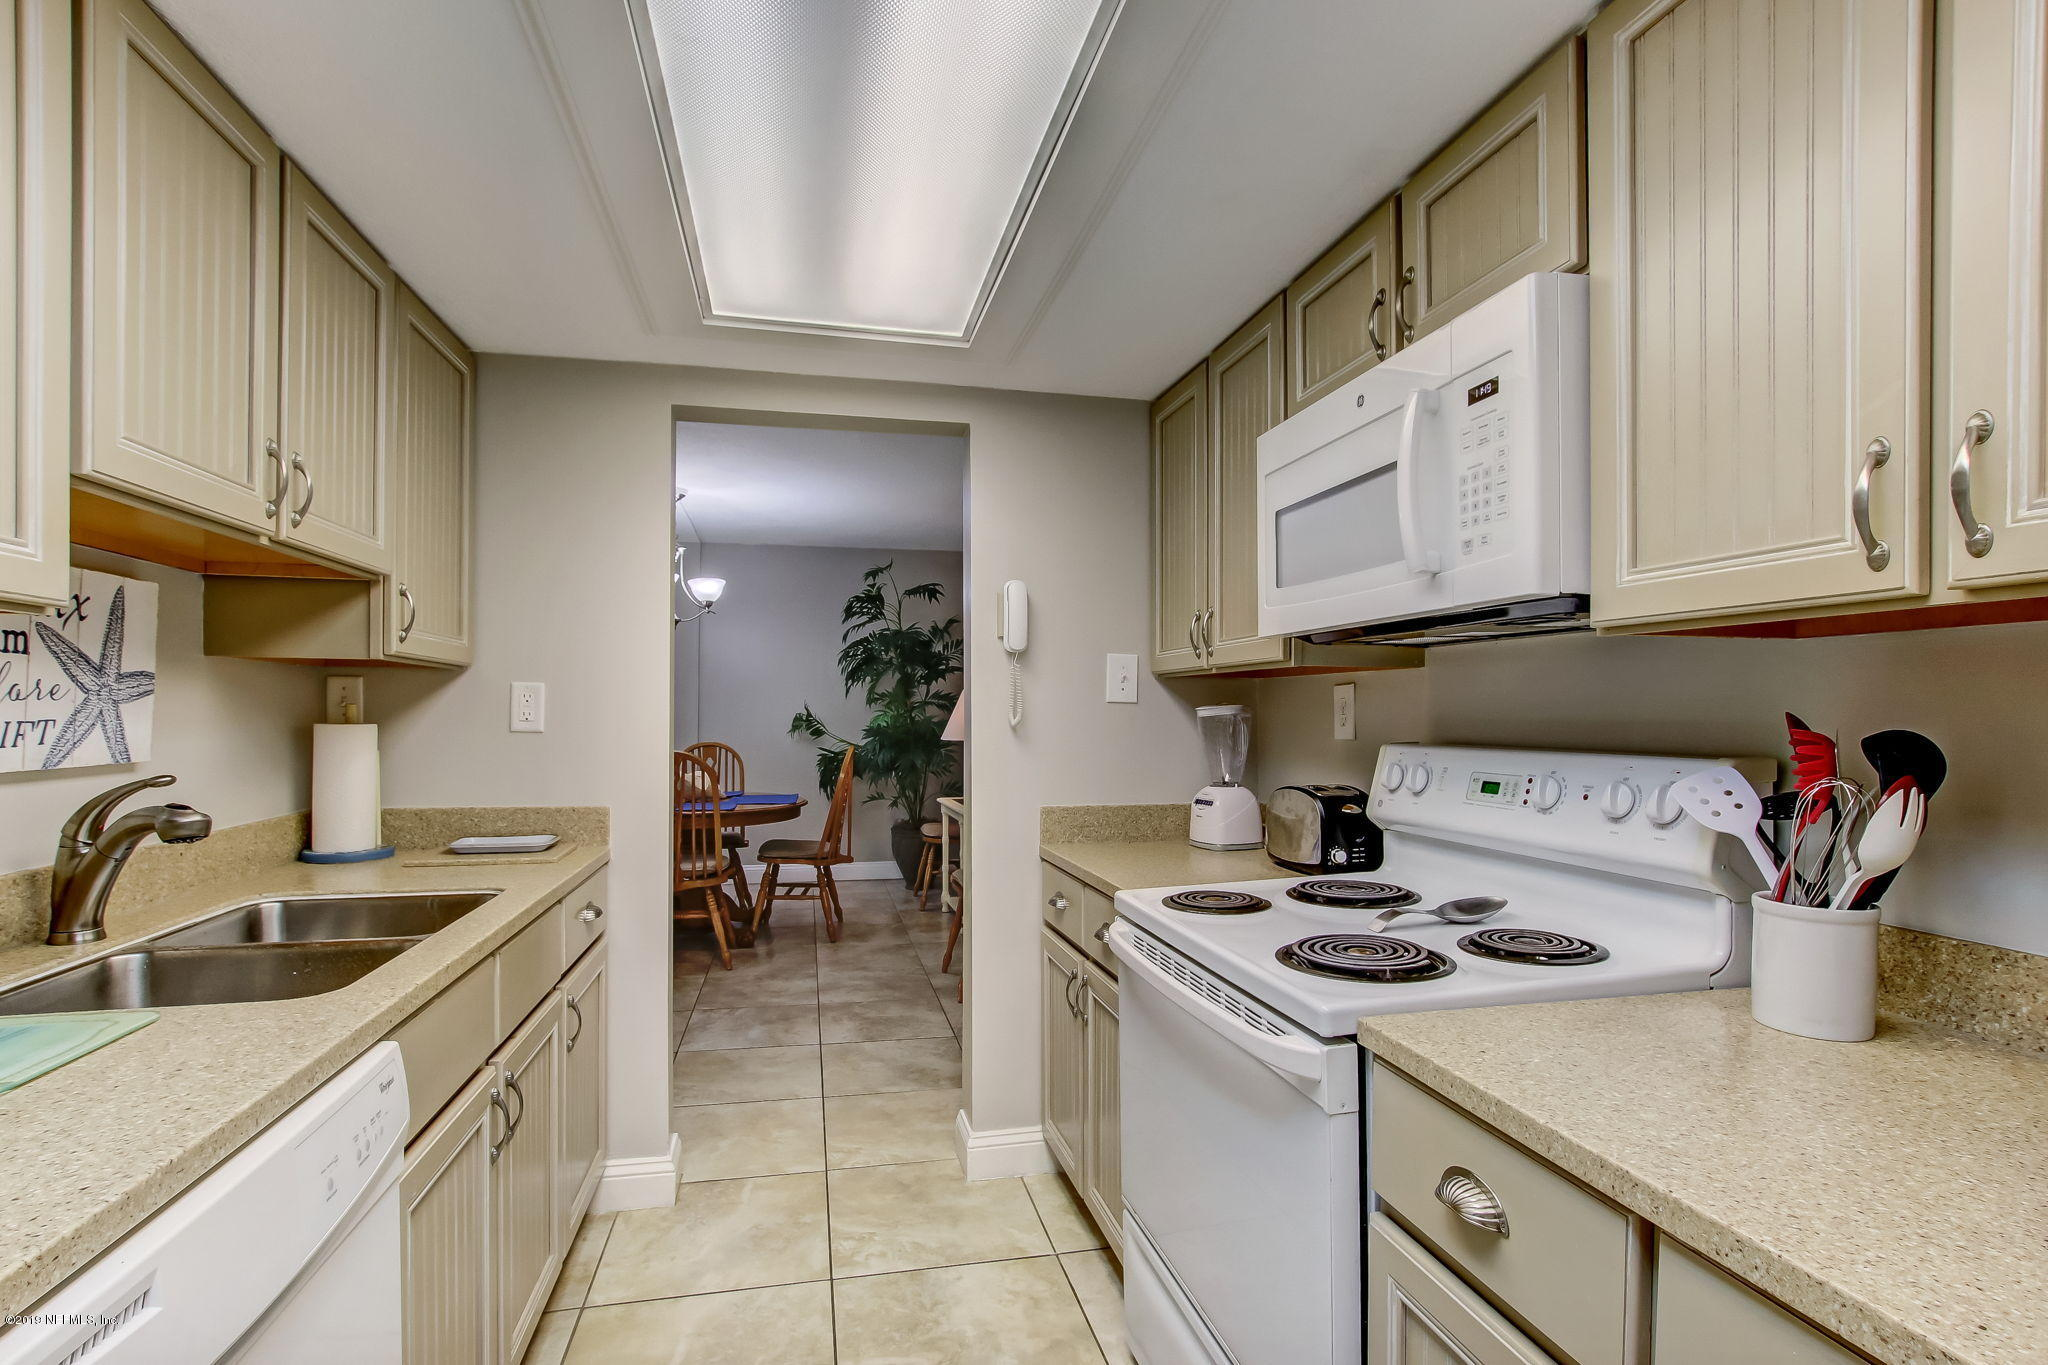 7870 A1A, ST AUGUSTINE, FLORIDA 32080, 2 Bedrooms Bedrooms, ,2 BathroomsBathrooms,Condo,For sale,A1A,1019205